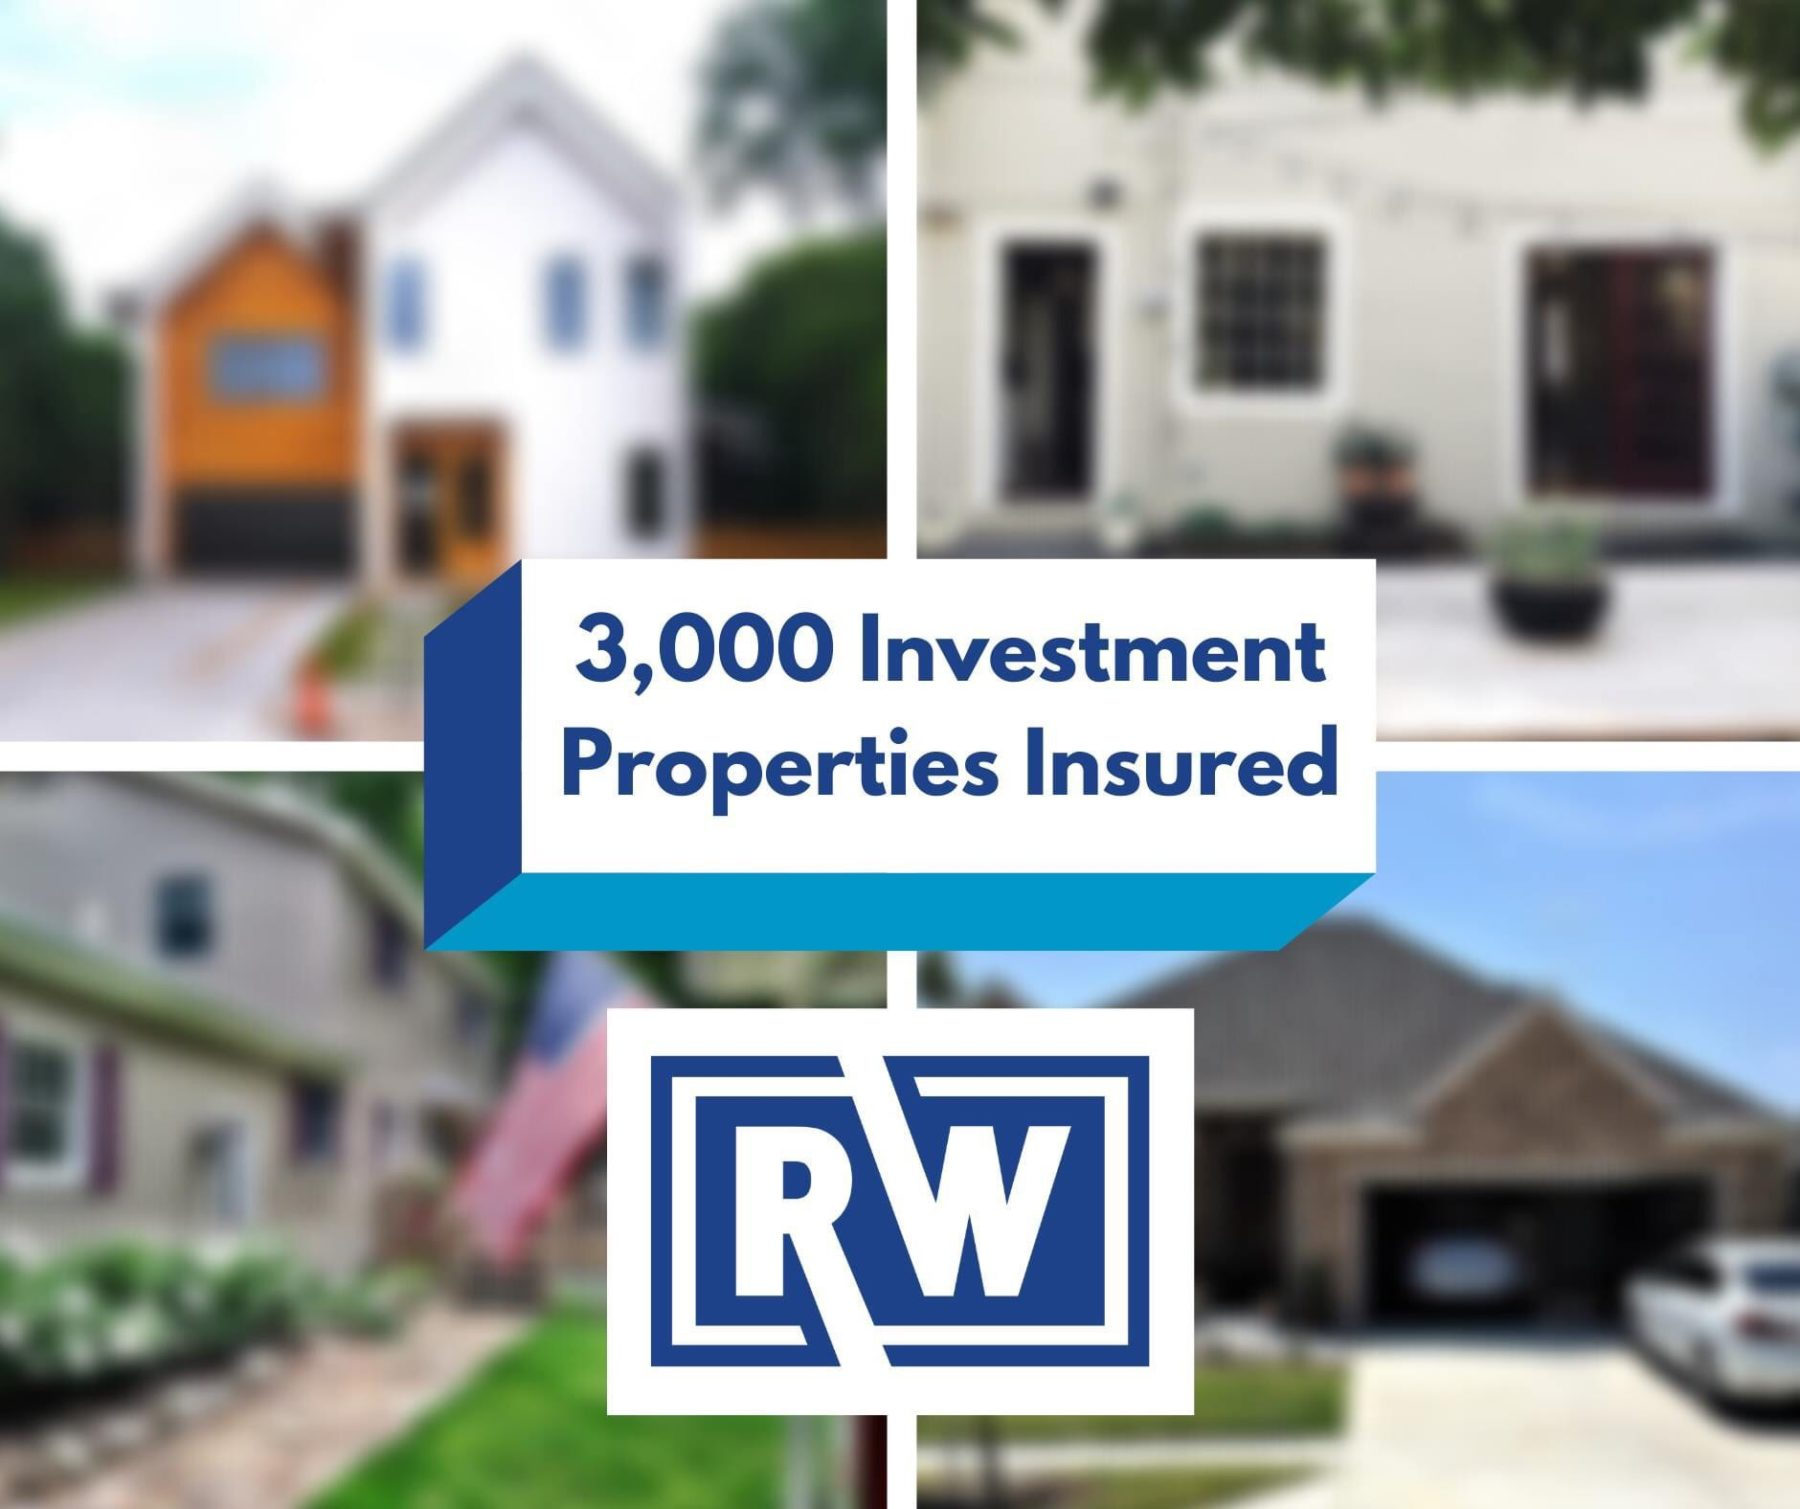 3,000 investment properties insured